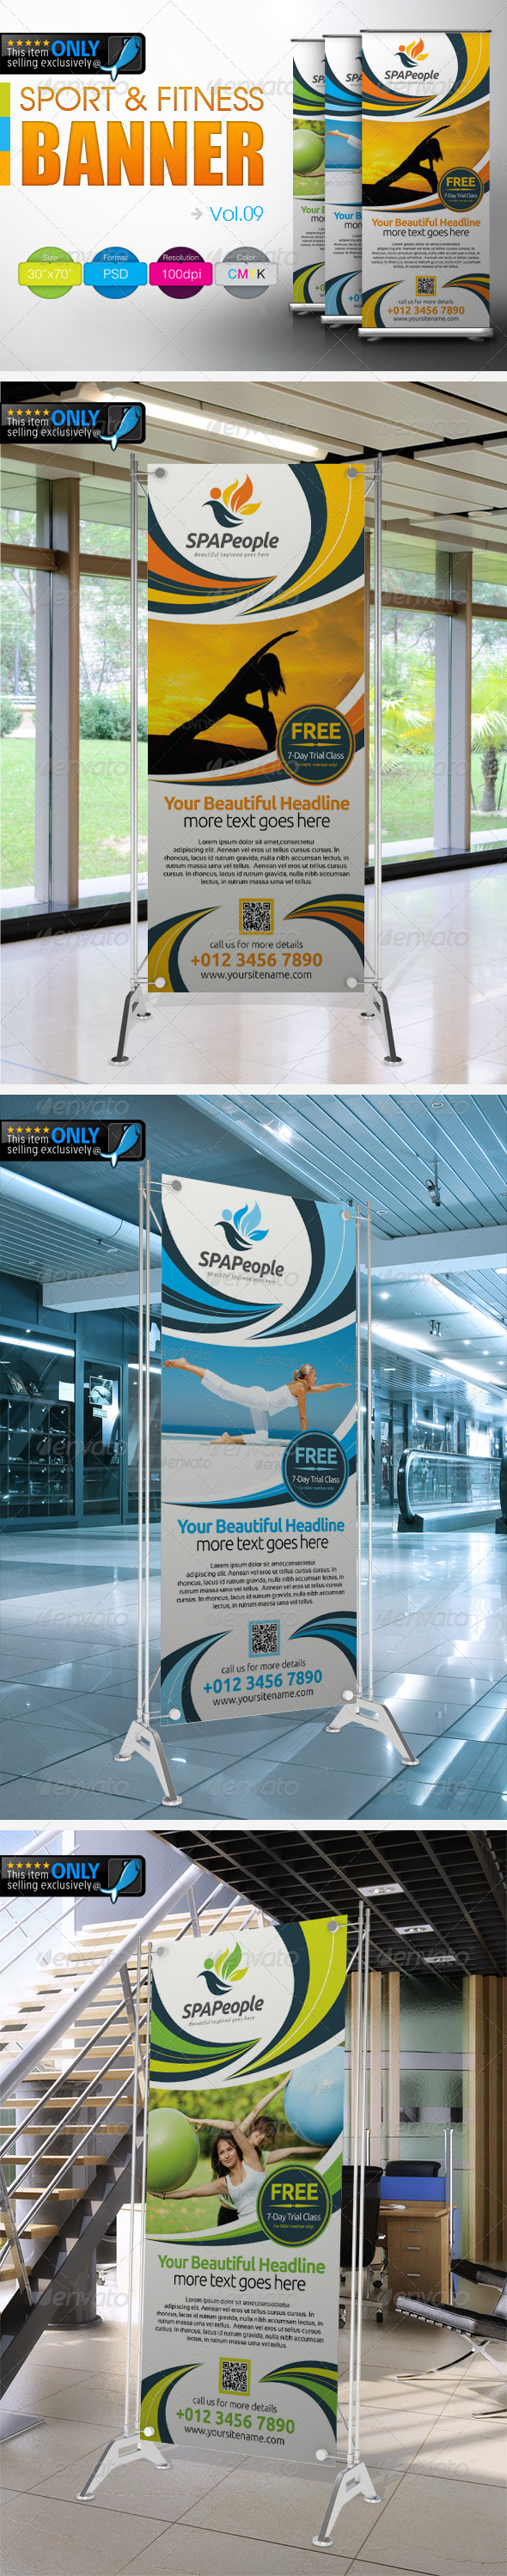 Fitness Banner Vol.8 - Signage Print Templates